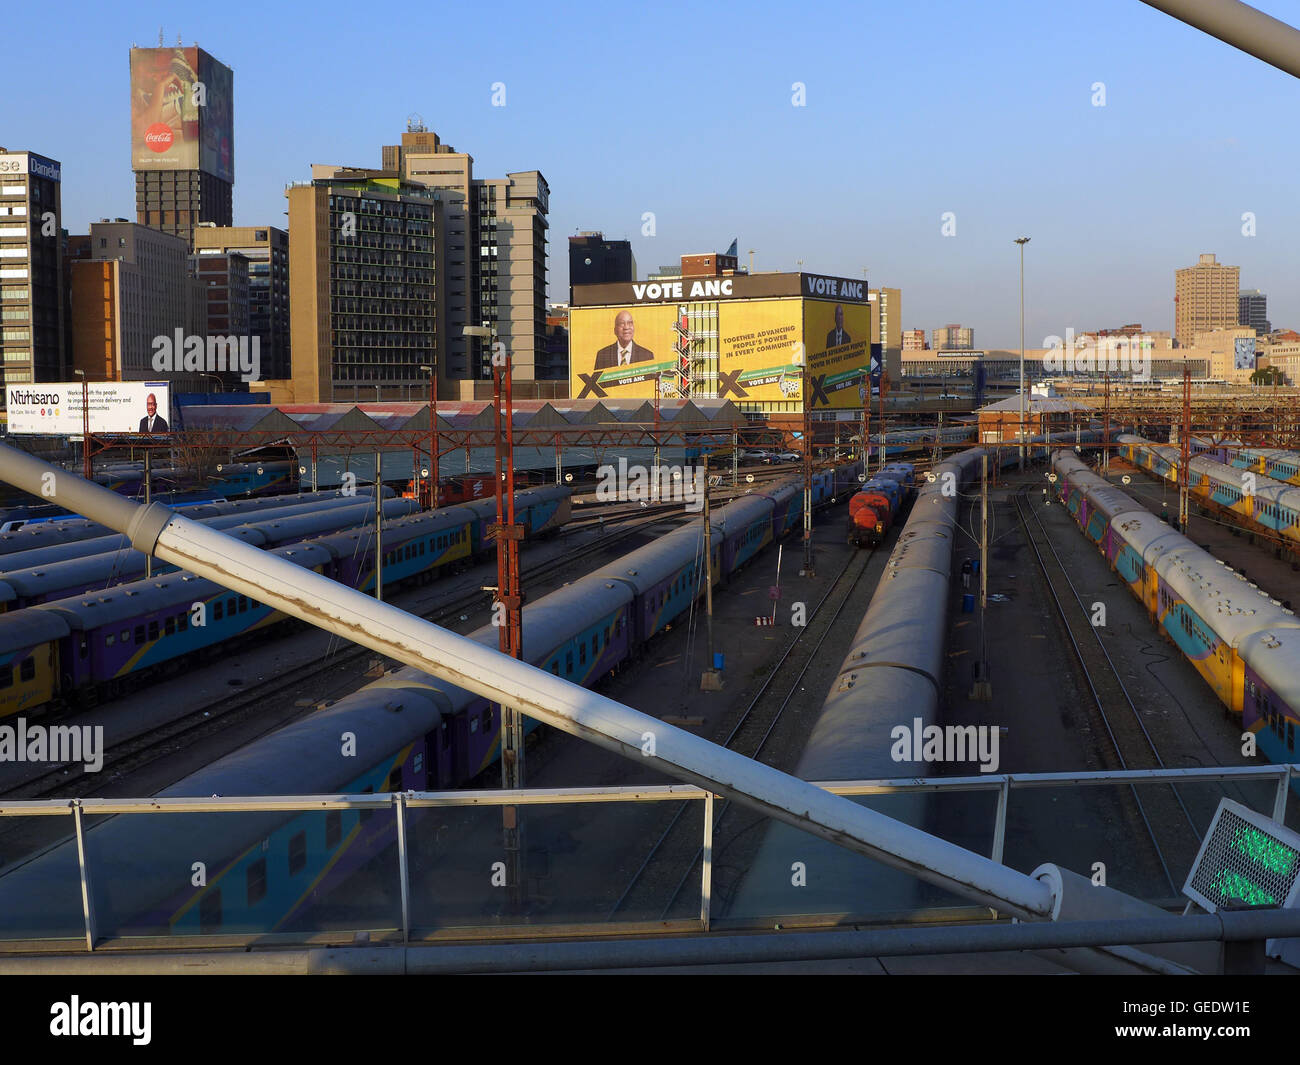 An election billboard  for the ANC and the railway yards of Johannesburg Park Station   as seen from the Nelson - Stock Image